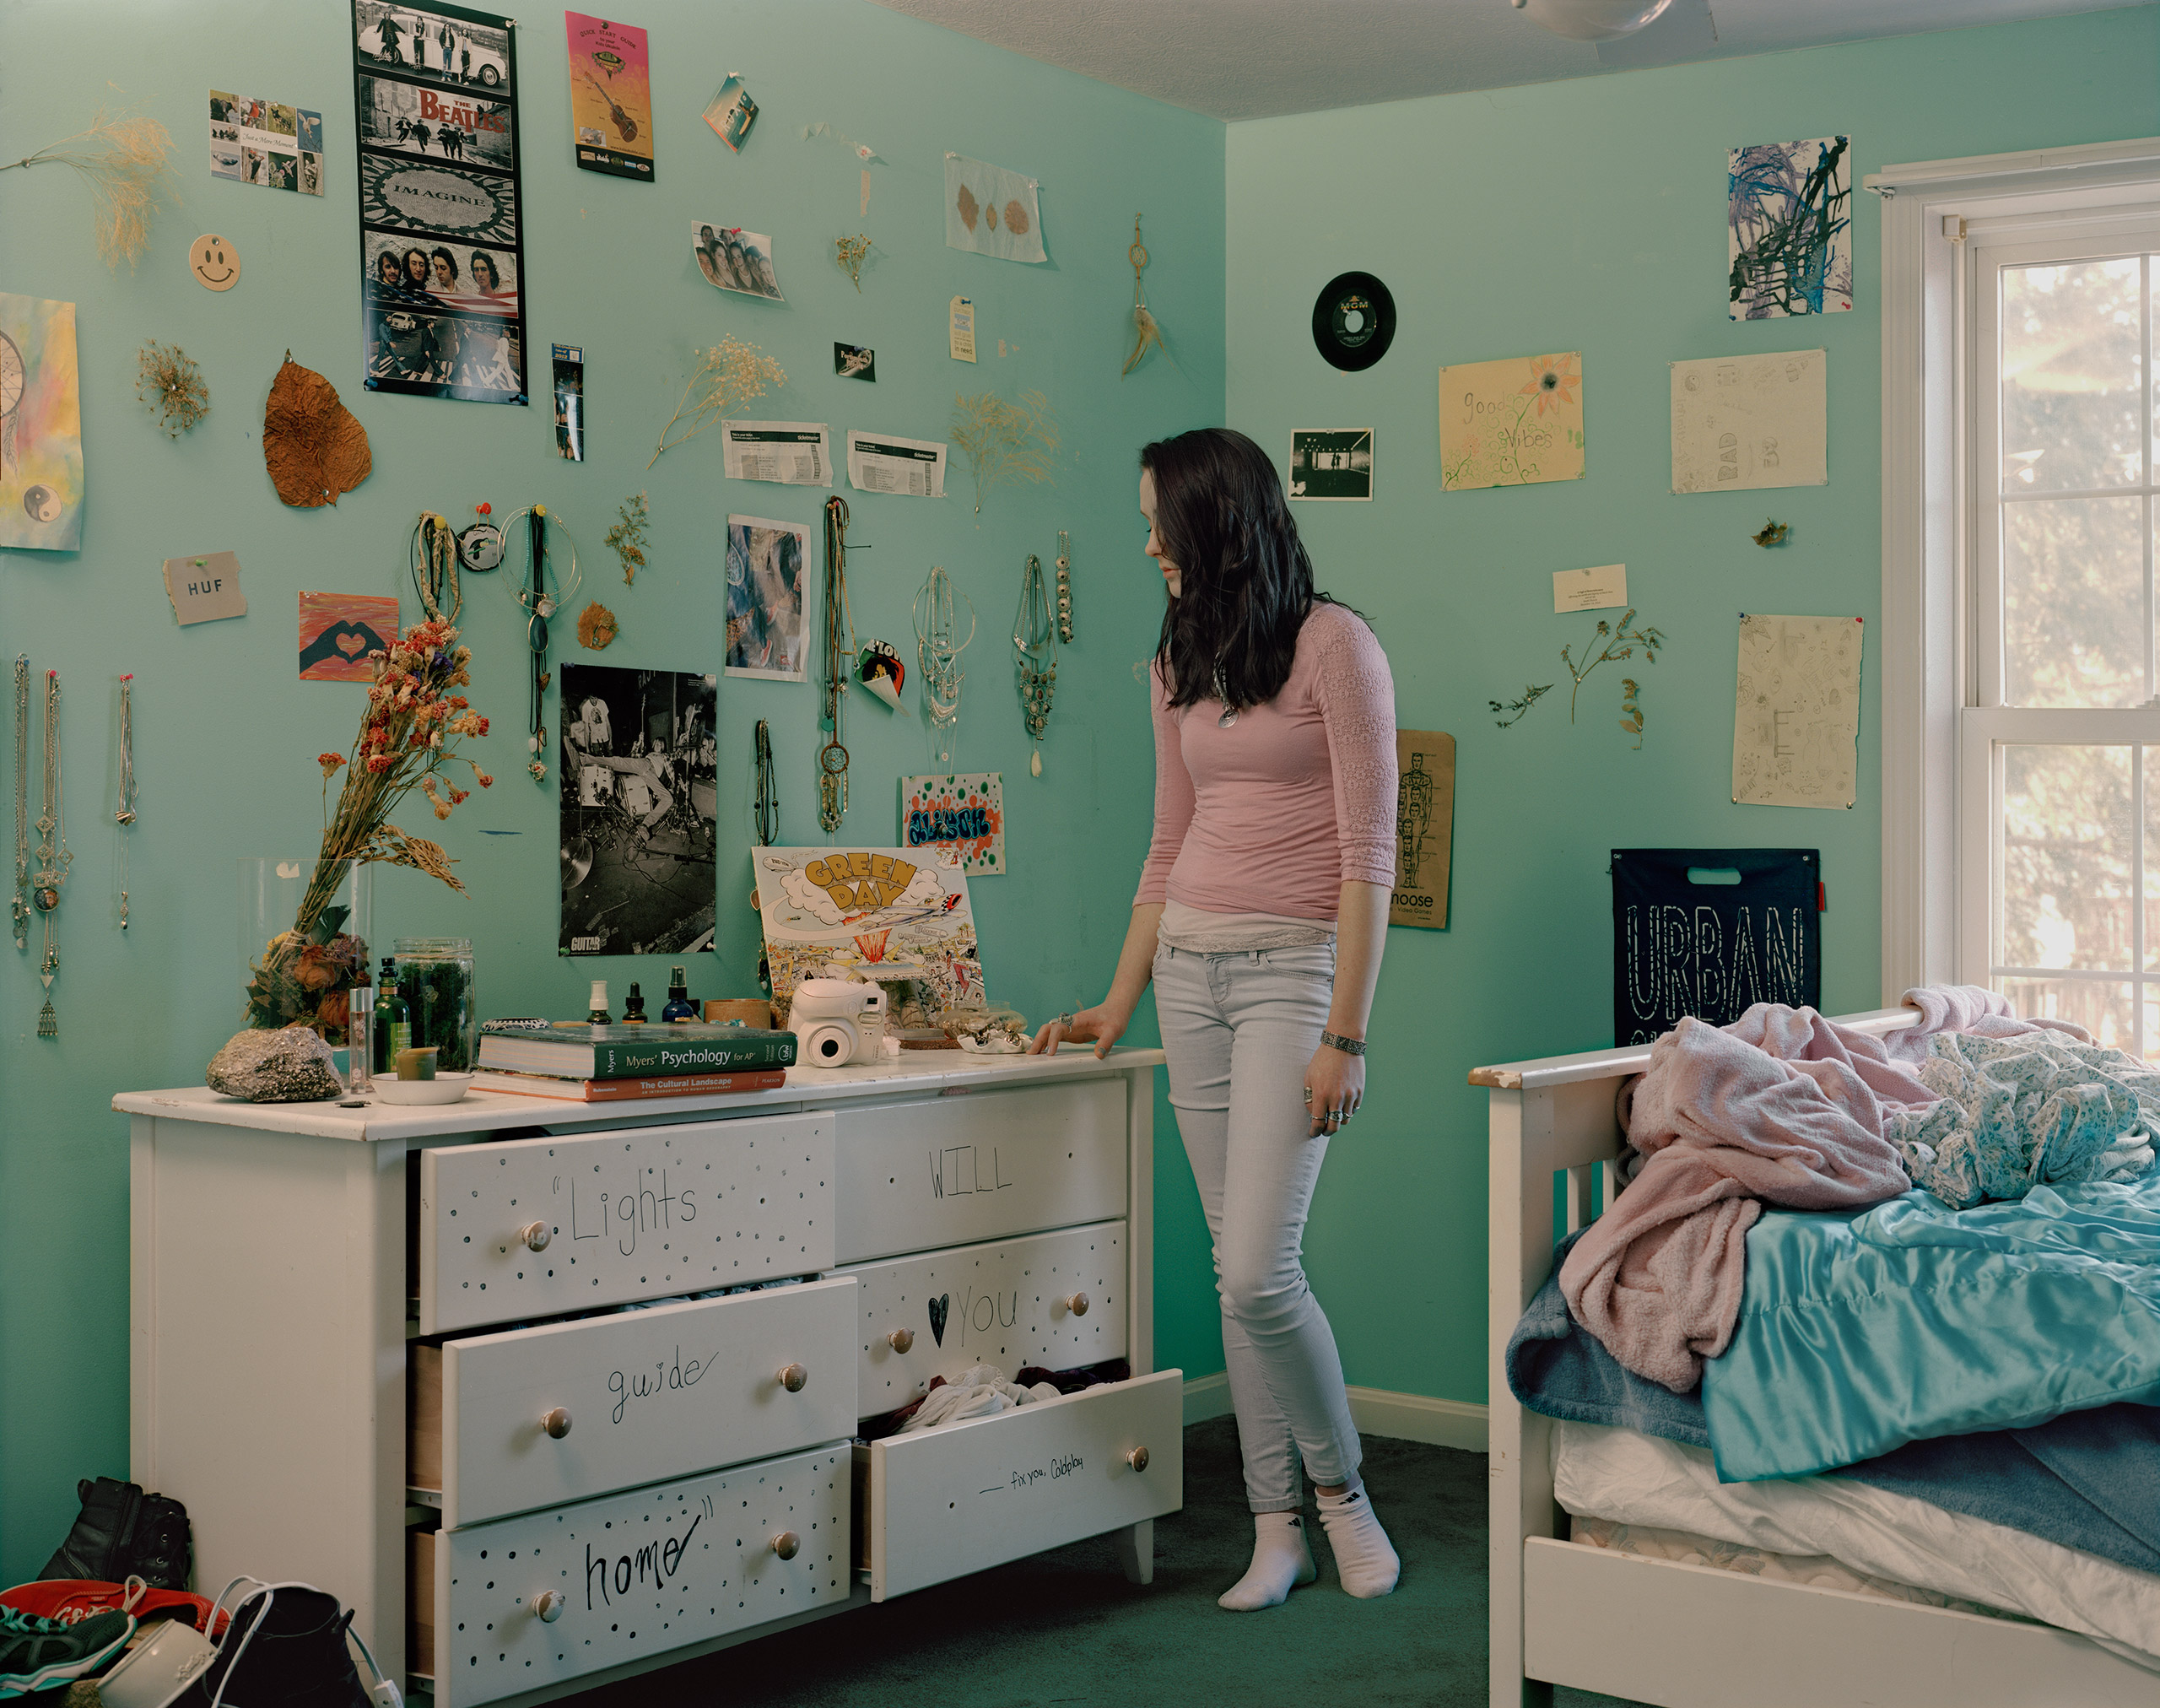 Alison Heyland, 18, shown at her home in Maine, was part of a group that makes films to raise awareness about depression, anxiety and self-harm.                               From                                 Behind TIME's Teen Anxiety Cover With Lise Sarfati